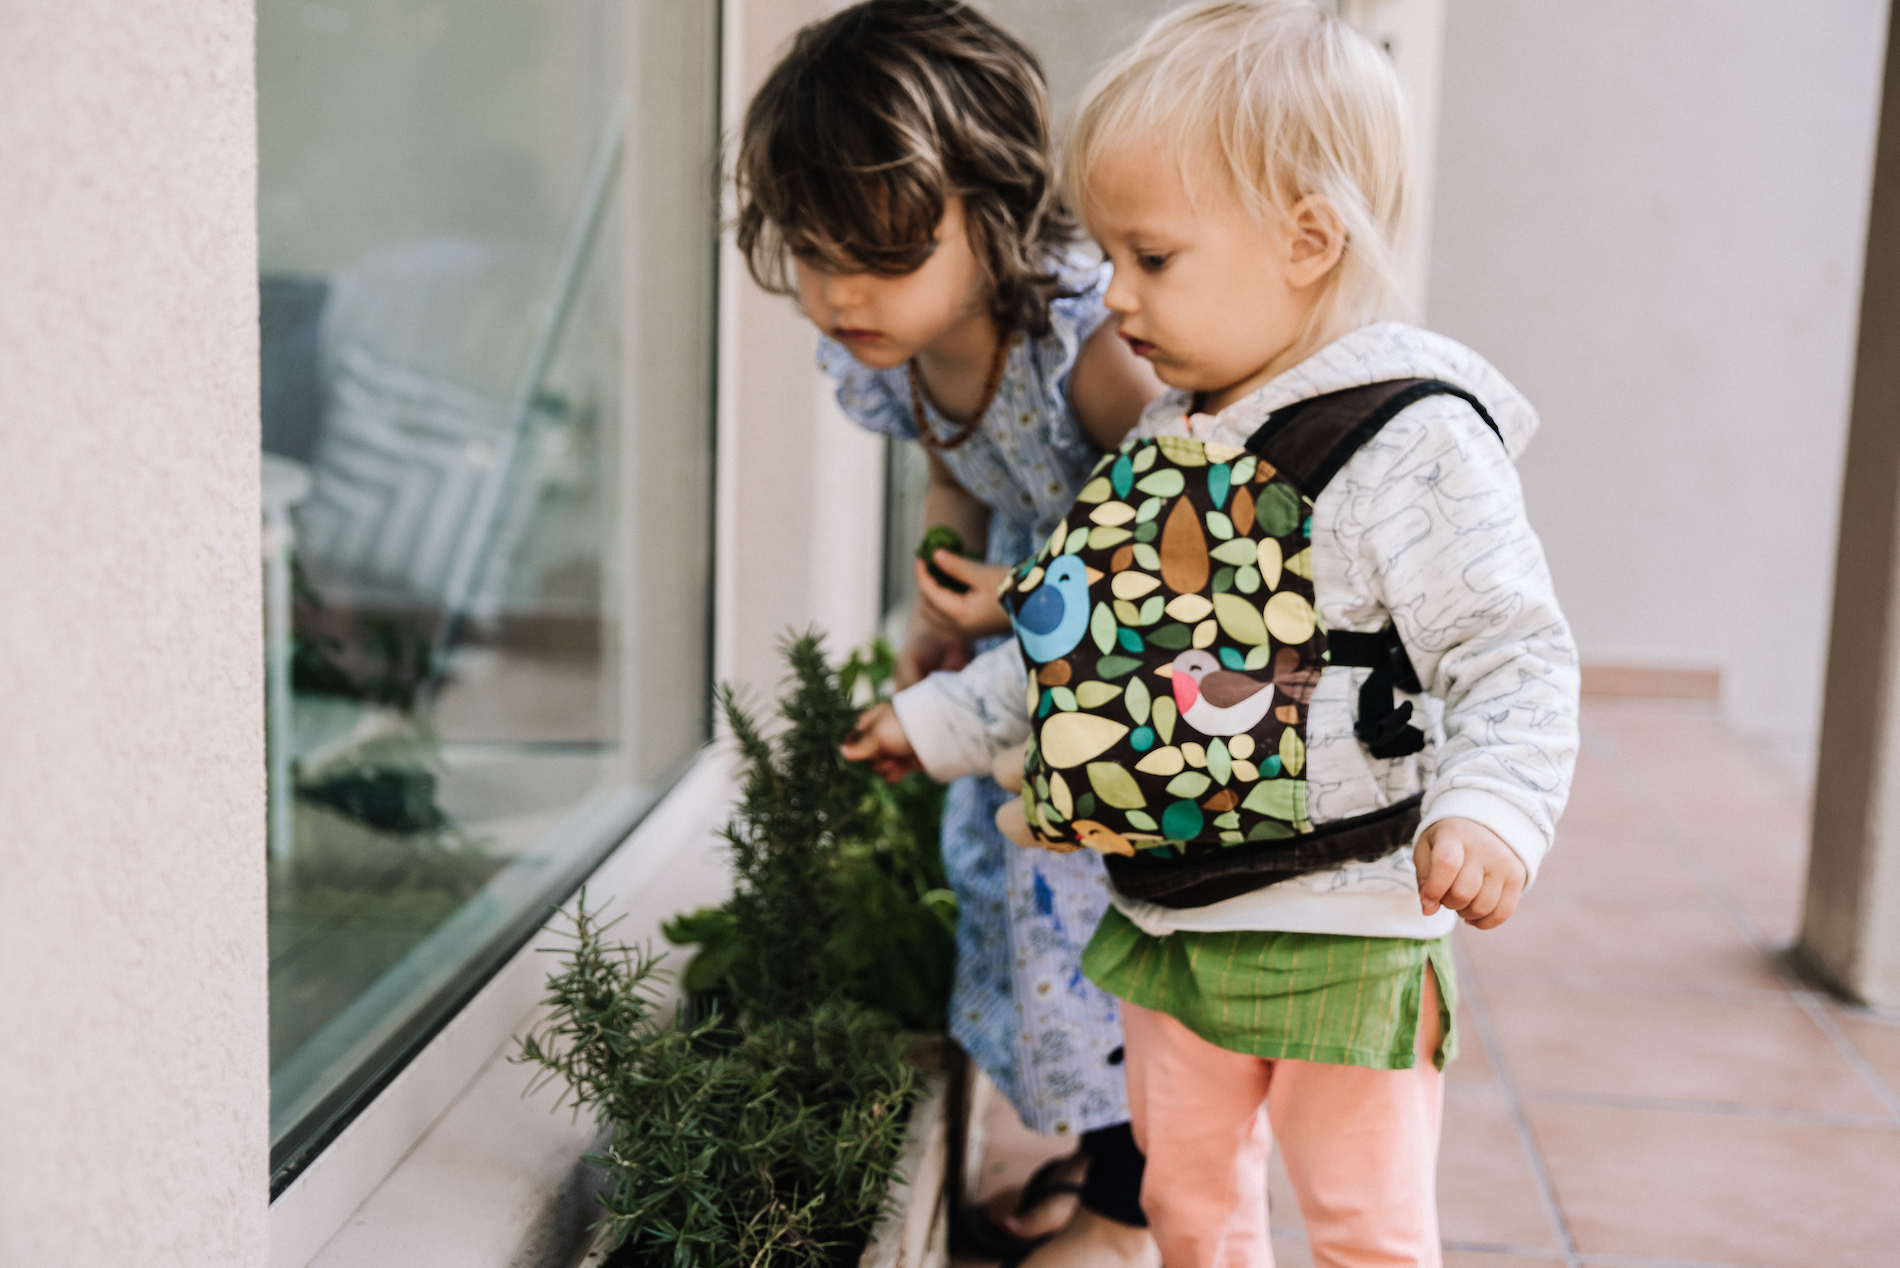 Two young children picking herbs from a plant pot outdoors